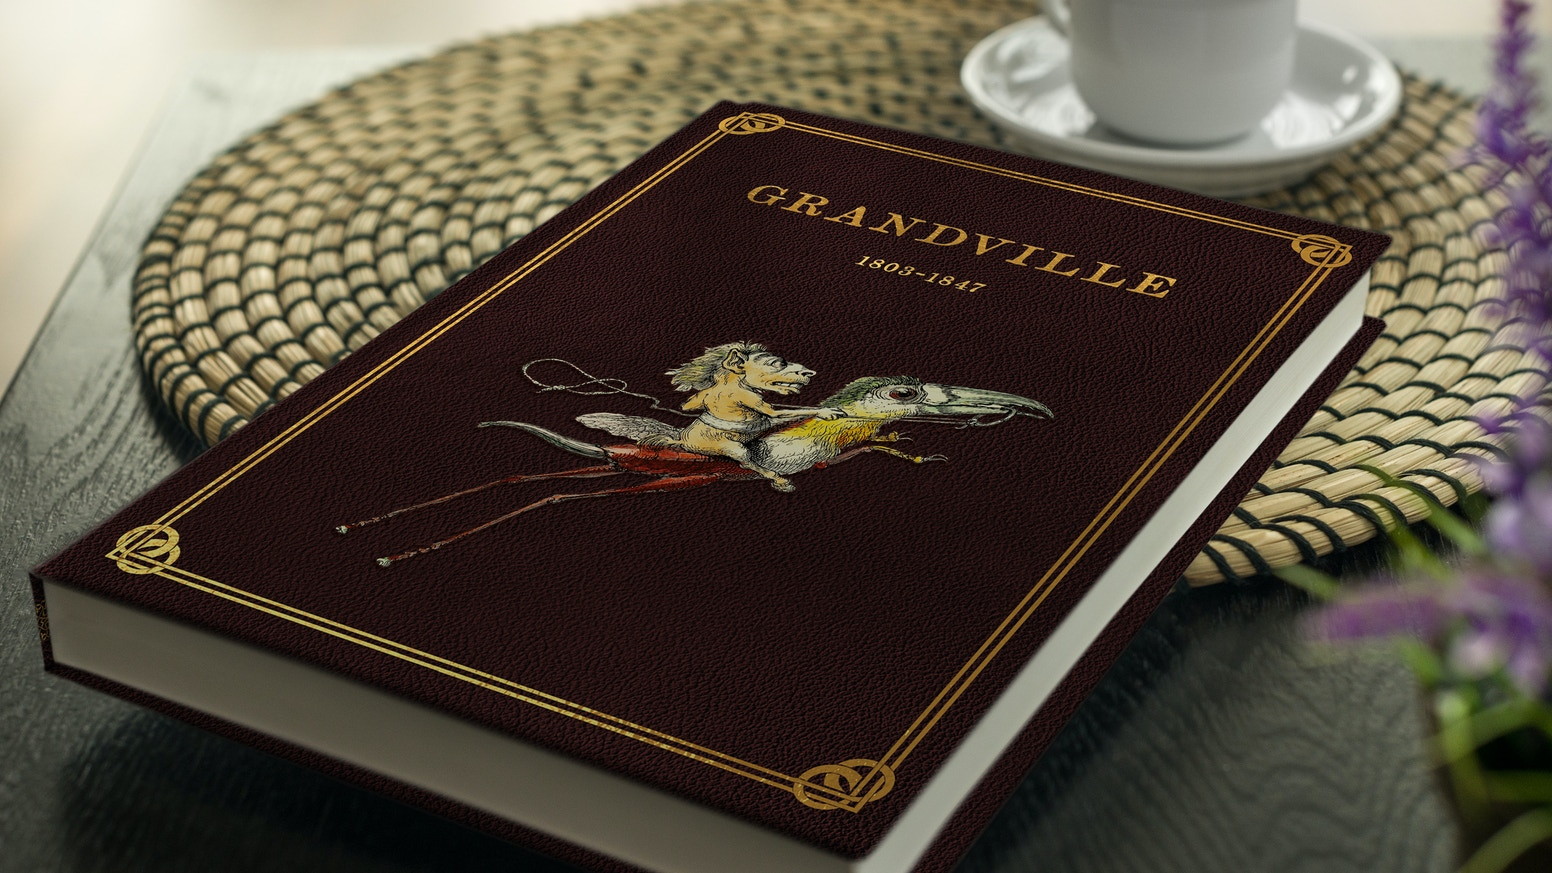 The unbelievable, fantastic Illustrations of J.J. Grandville 1803-1847, a journey through his life. Now on 180 pages, Hardcover Book!